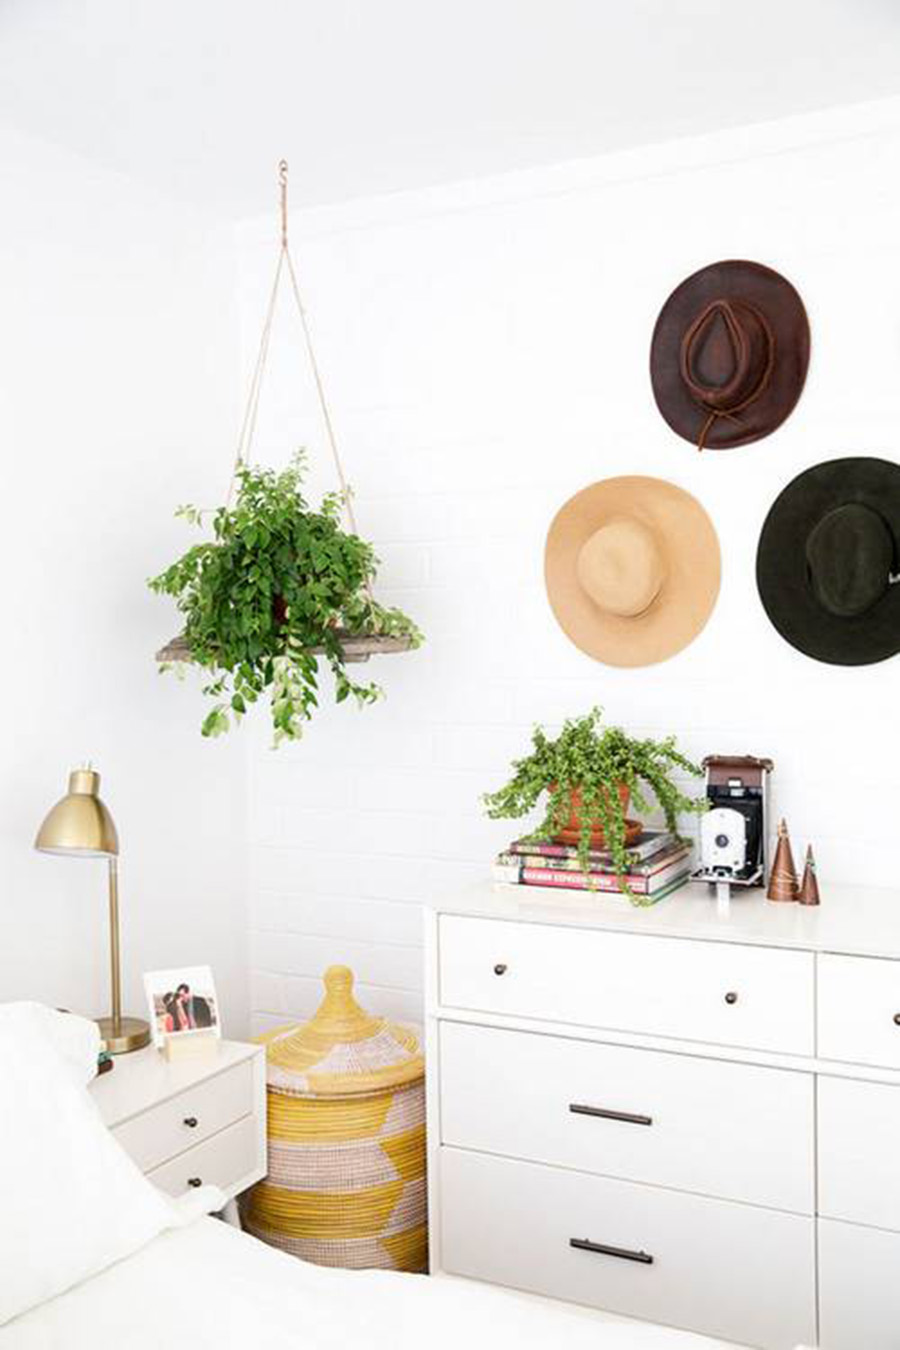 Hat Wall, Home Decor, Home Styling, Interior Design, Home Tour, Bohemian Style